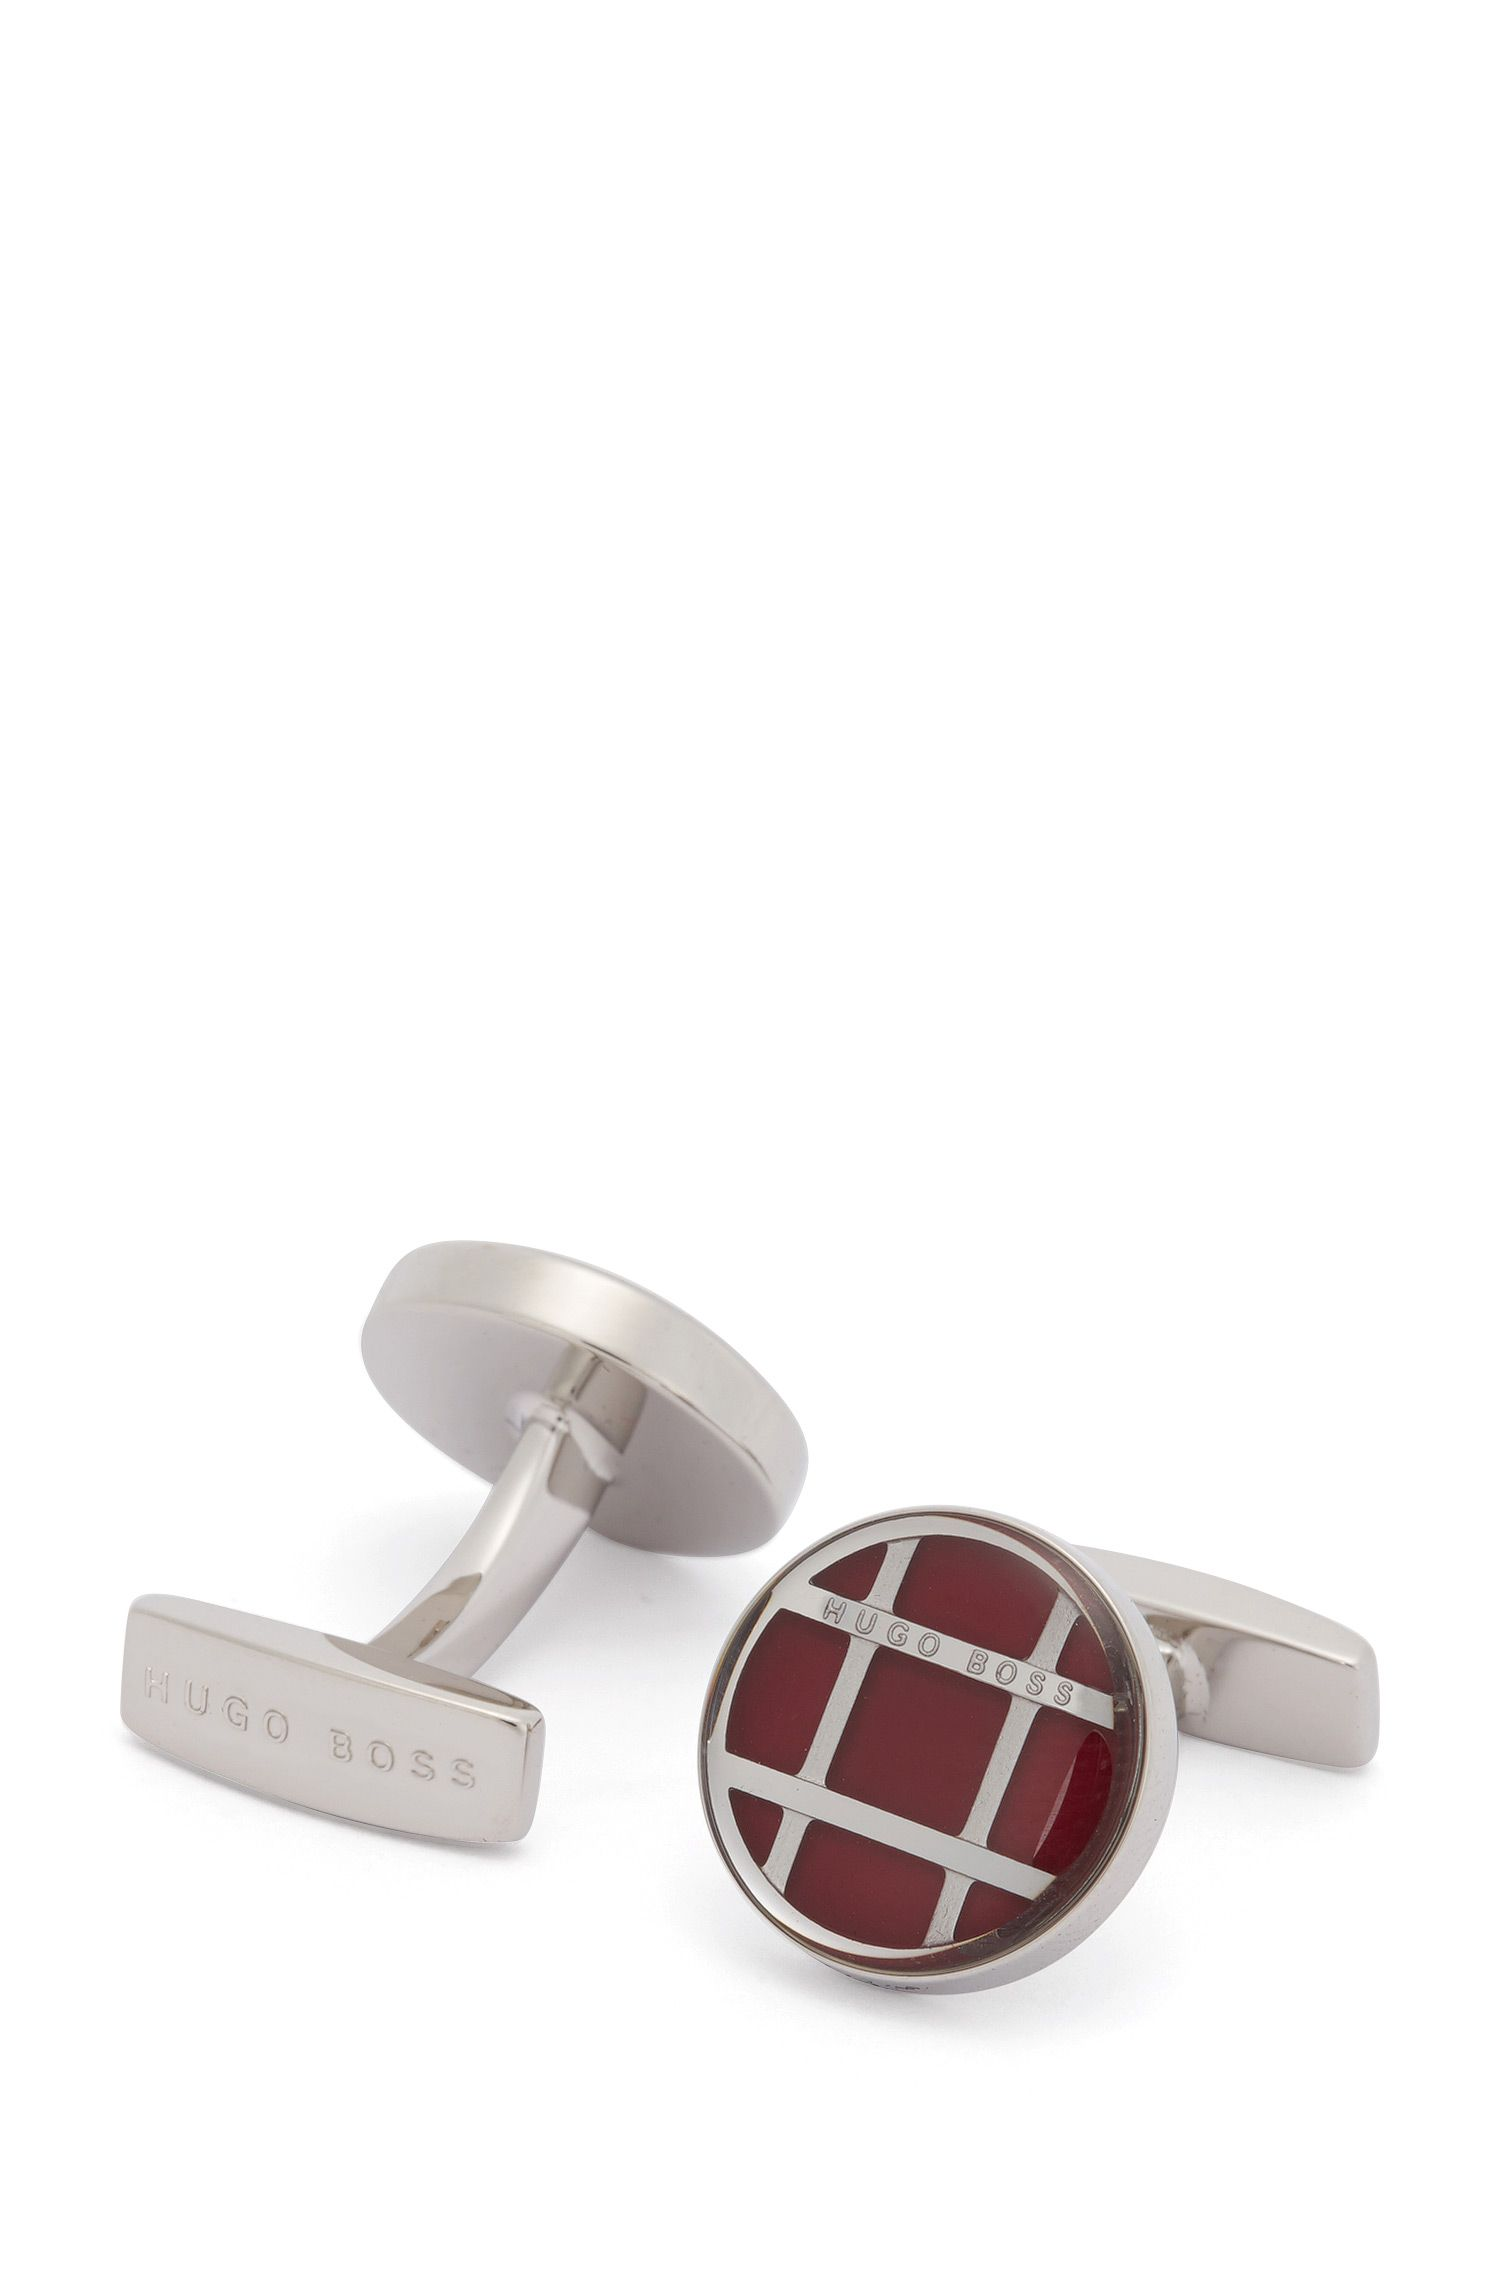 Round cufflinks with steel and enamel mesh detail